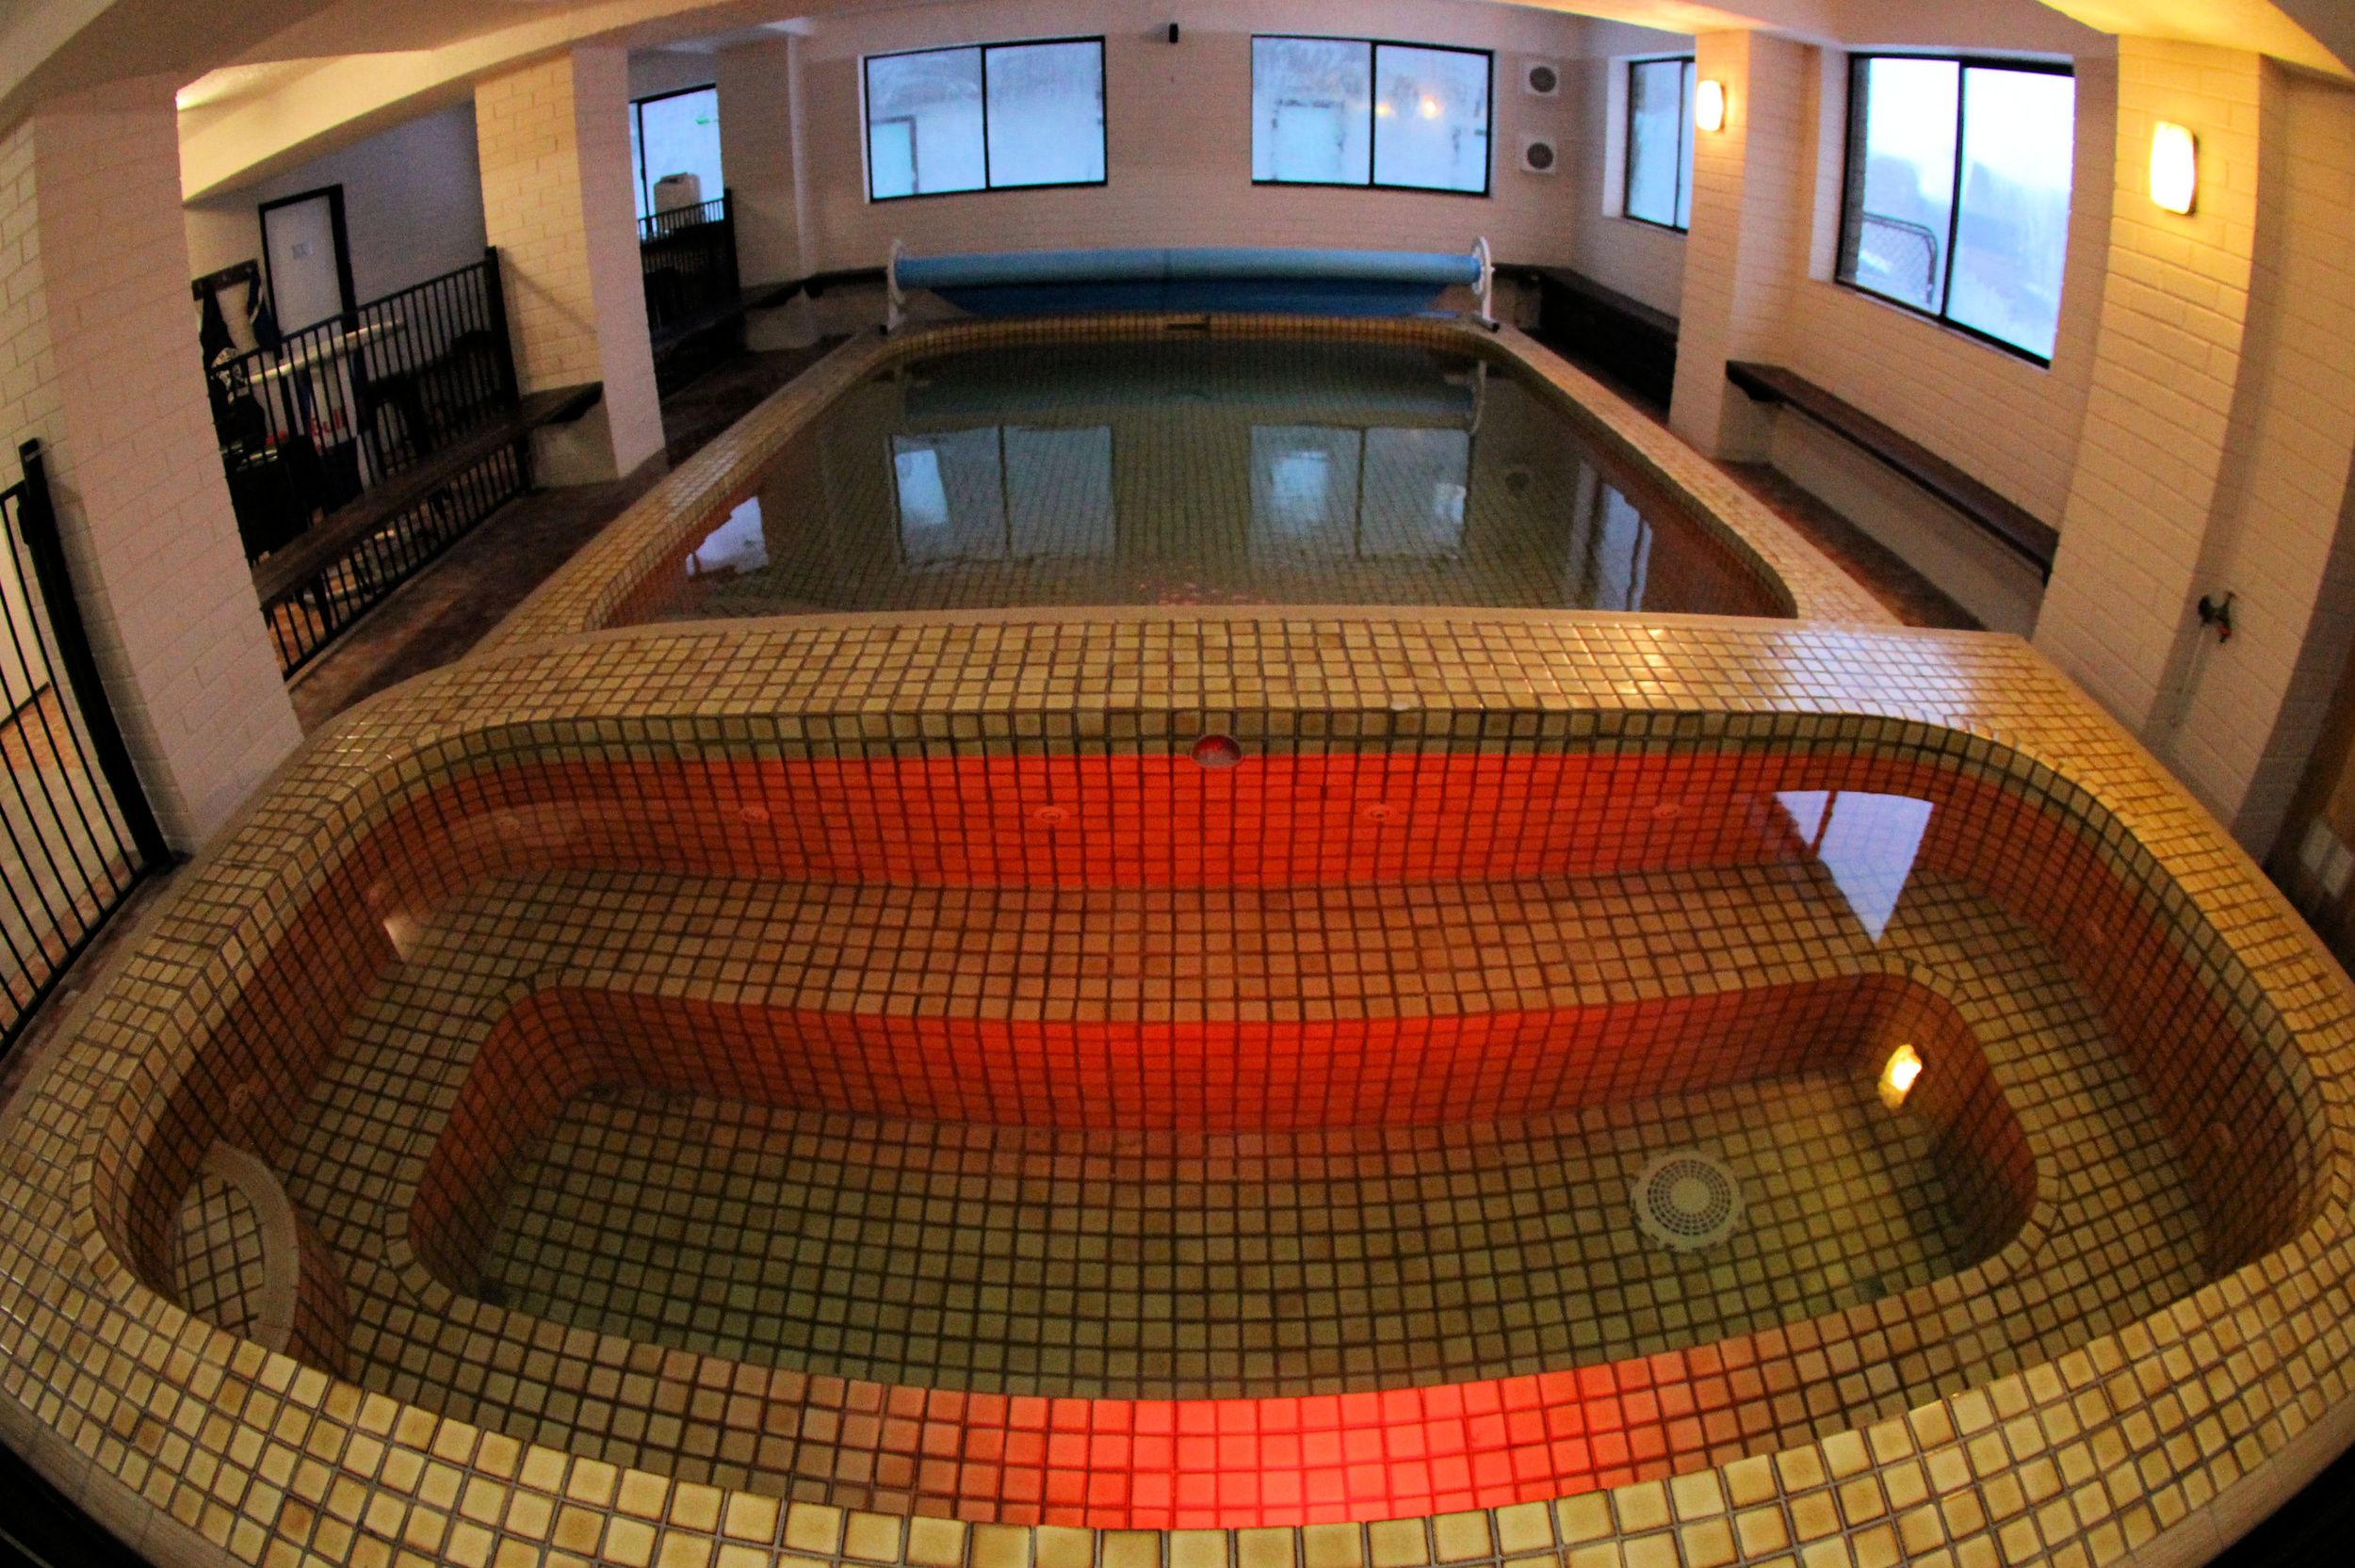 What better way to ease tired ski legs than with a dip in our heated pool and spa?